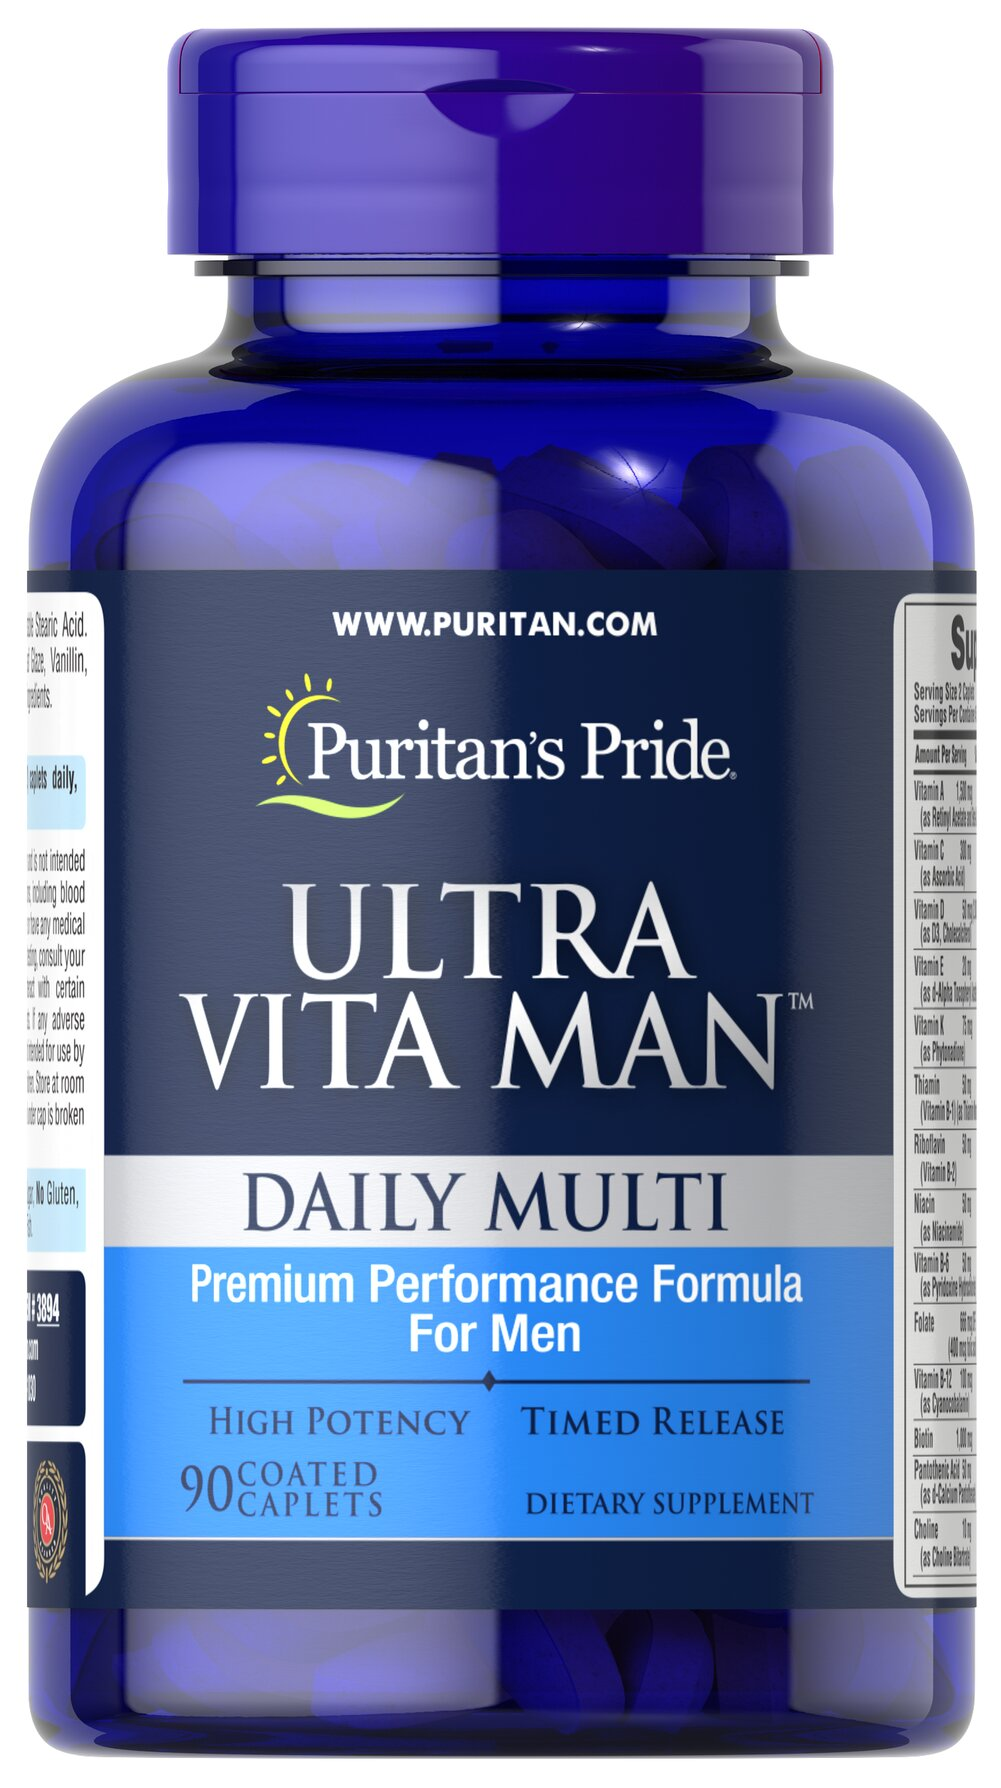 Ultra Vita Man™ Time Release <p>This time release multivitamin  delivers vitamins and minerals shown to be beneficial to men's overall wellness. From antioxidant and immune support to cardiovascular health, Ultra Vita Man is ideal for today's on-the-go men!**</p> 90 Caplets  $23.19